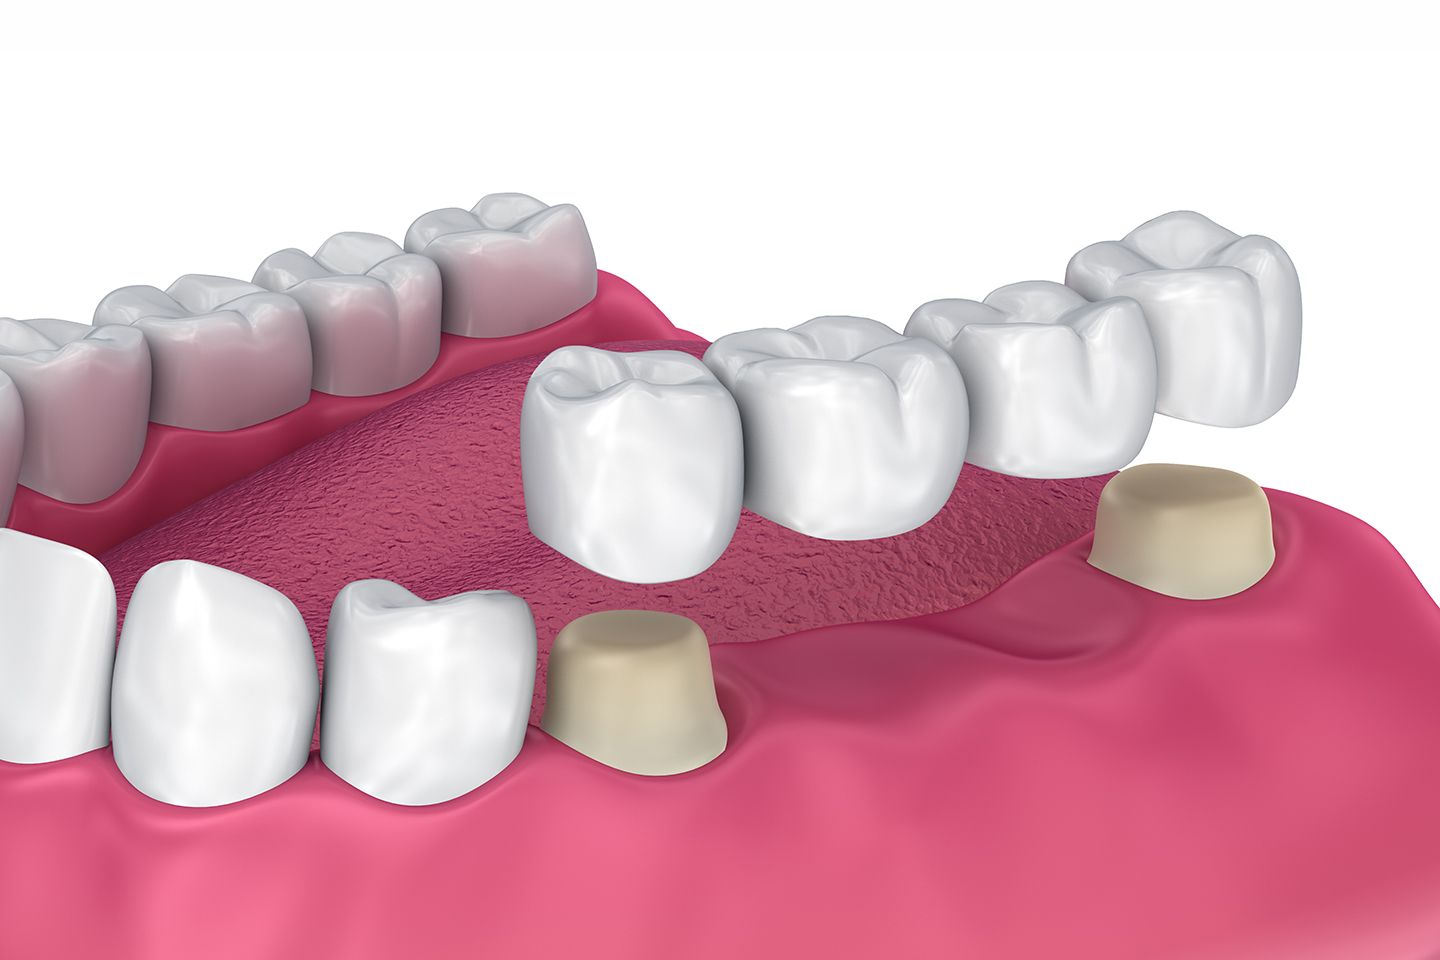 How Dental Bridges Improve Your Overall Health and Well-Being